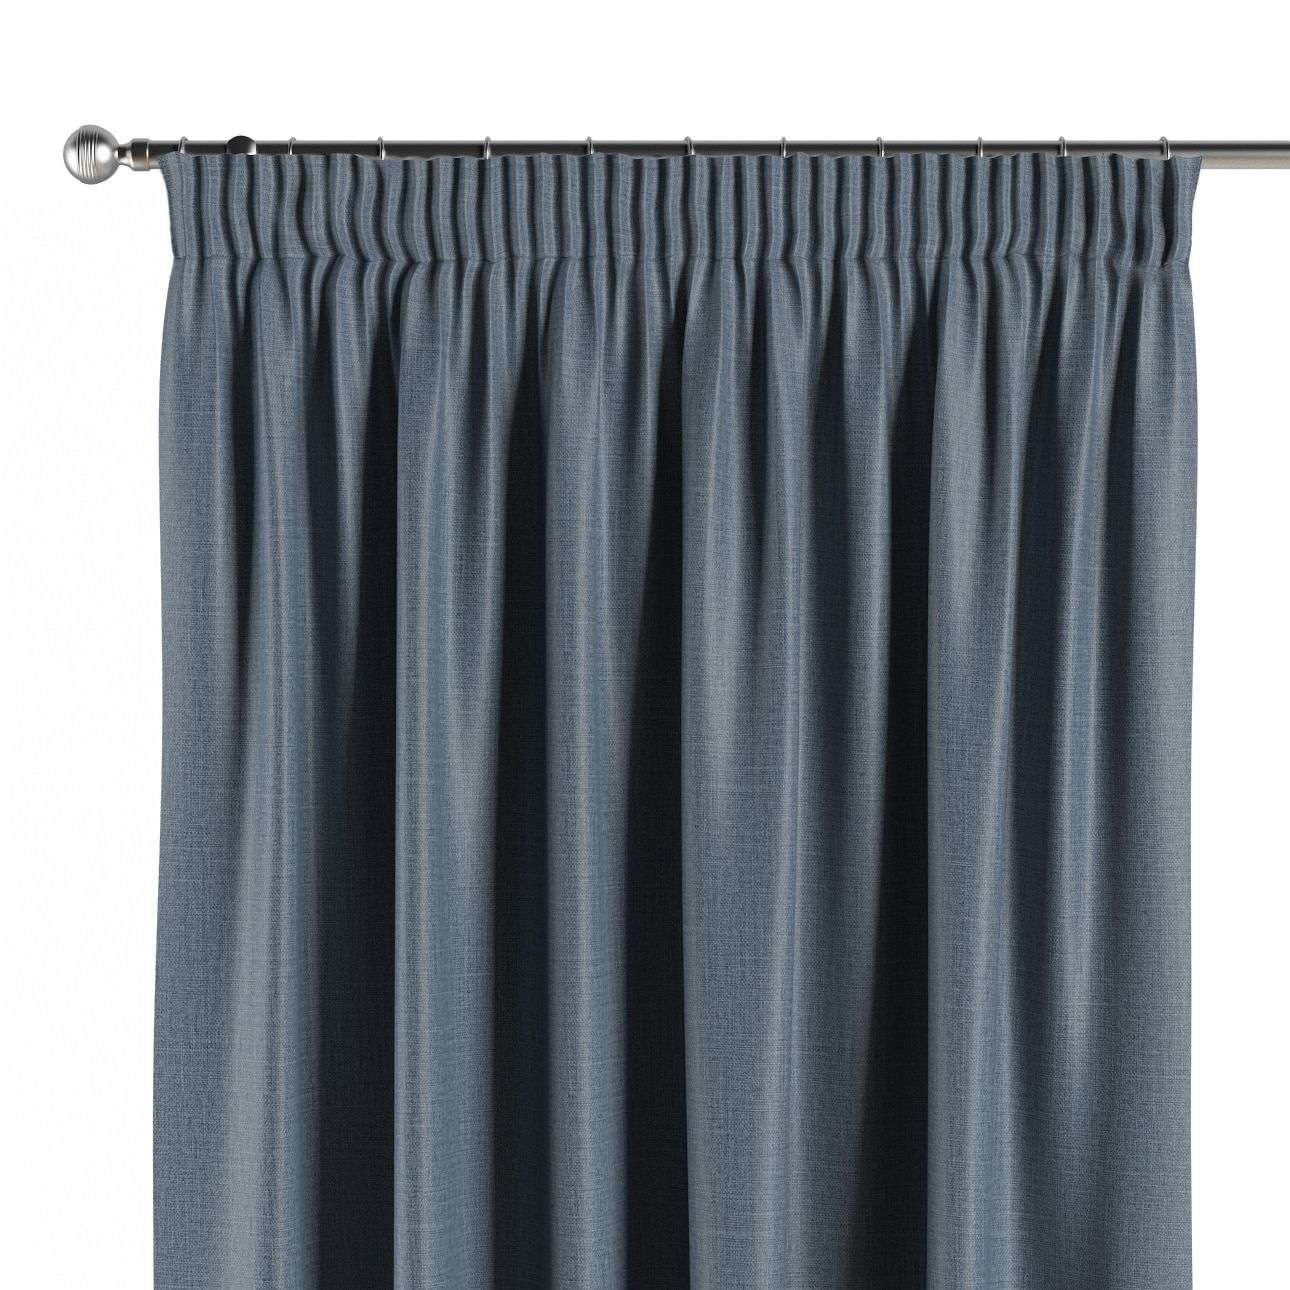 102 Inch Curtains 140 Inch Curtains Avarii Org Home Design Best Ideas